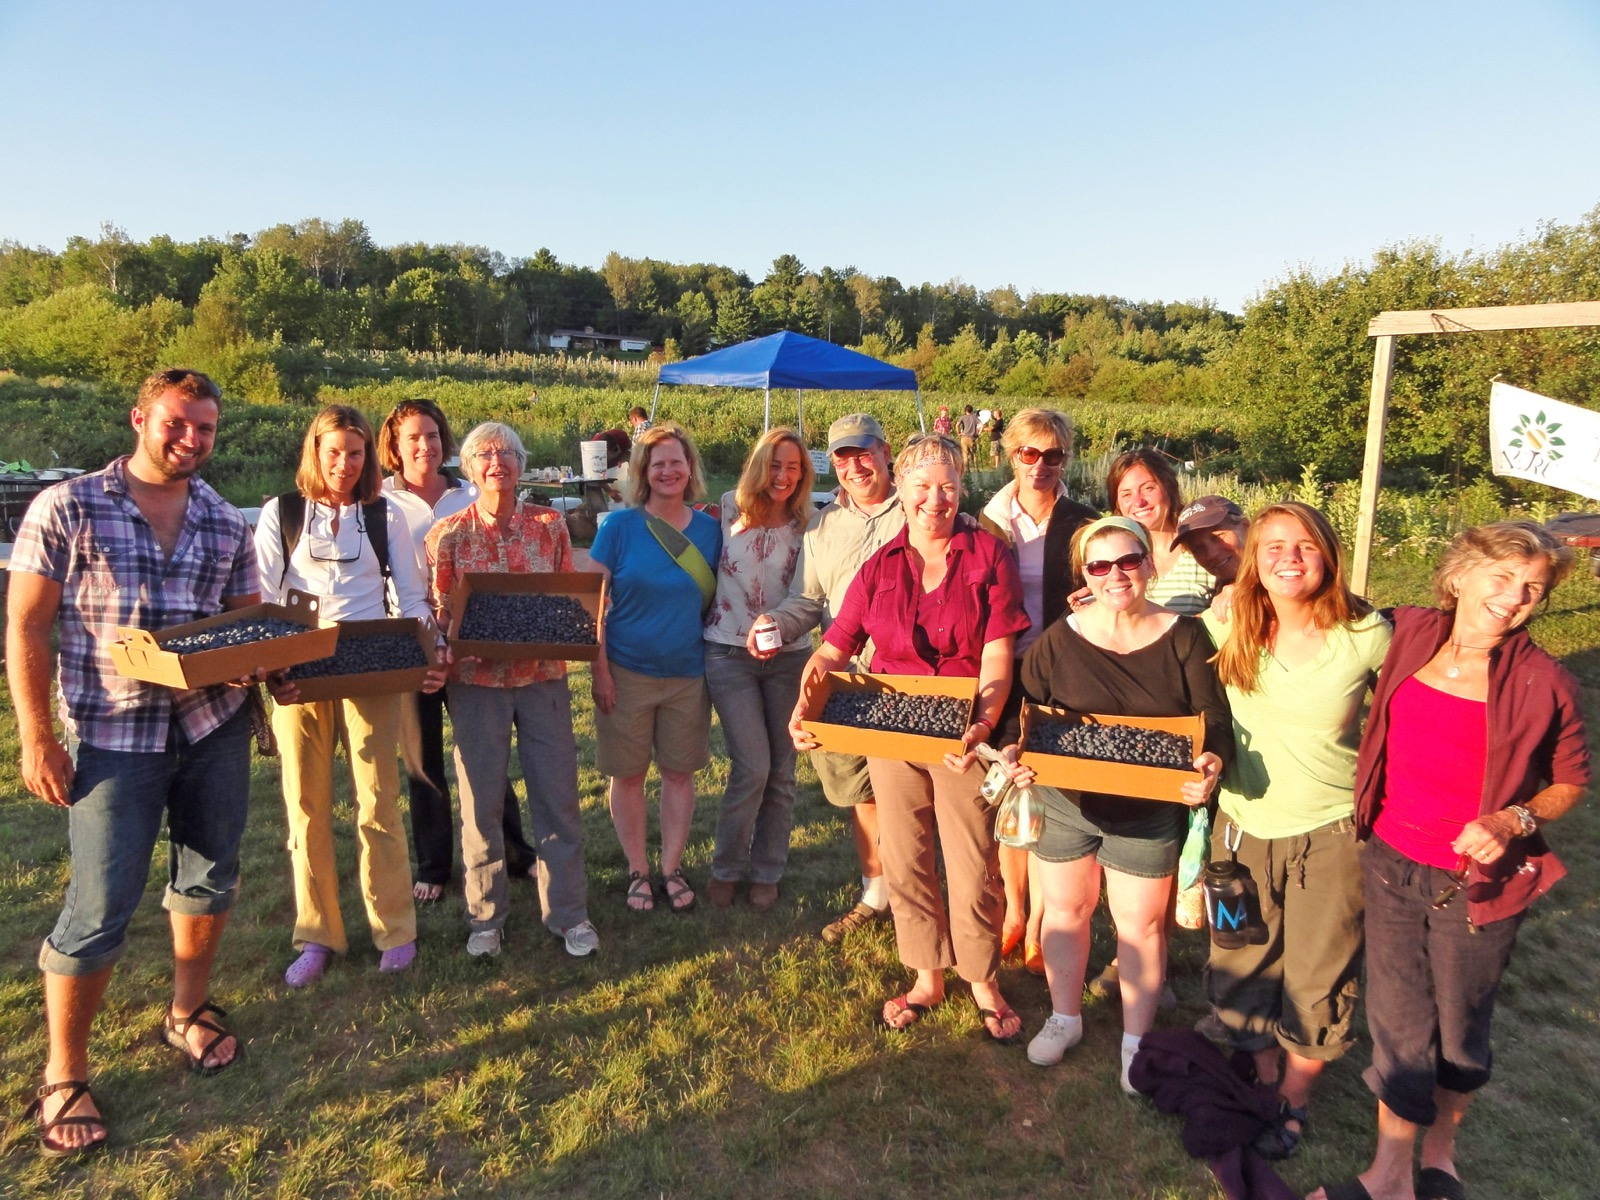 A group poses for the camera while holding many boxes of blueberries.